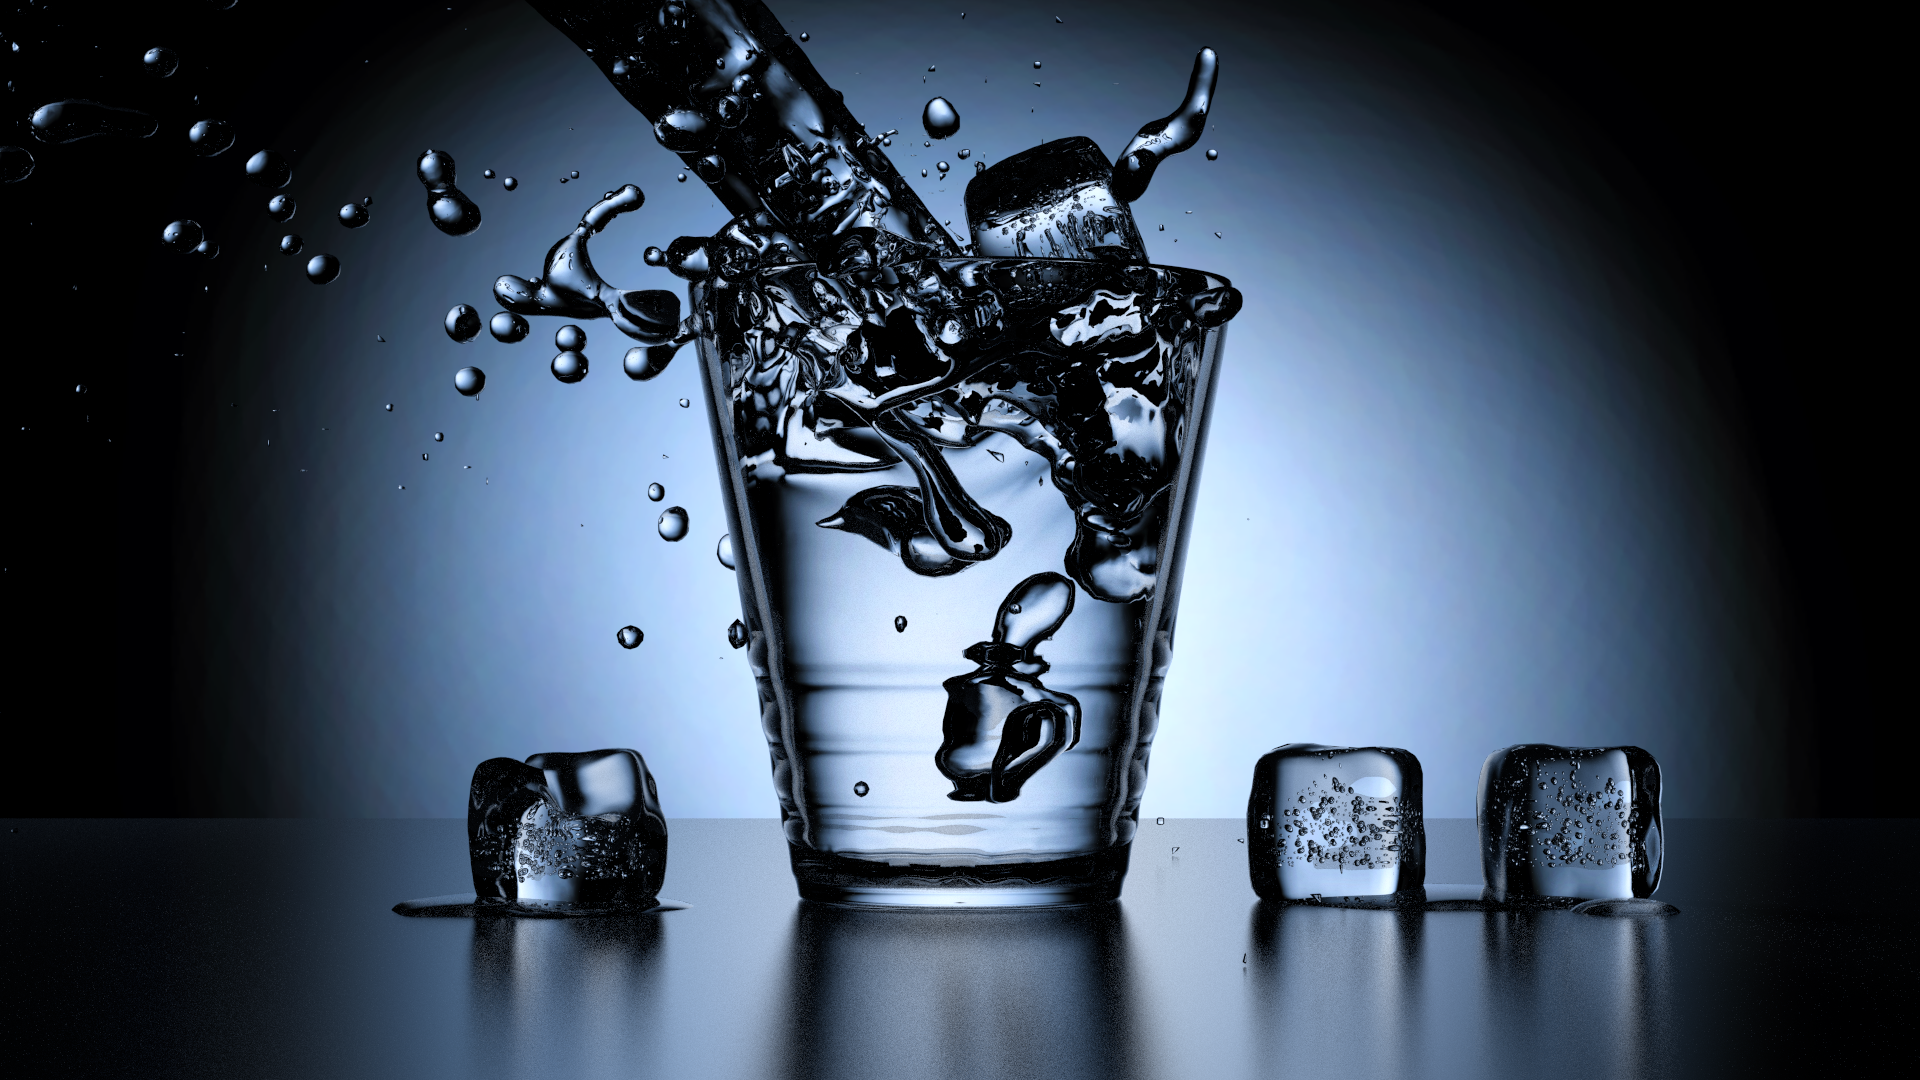 Simulated Water Flowing Into A Cup Water Flow Cup Blender